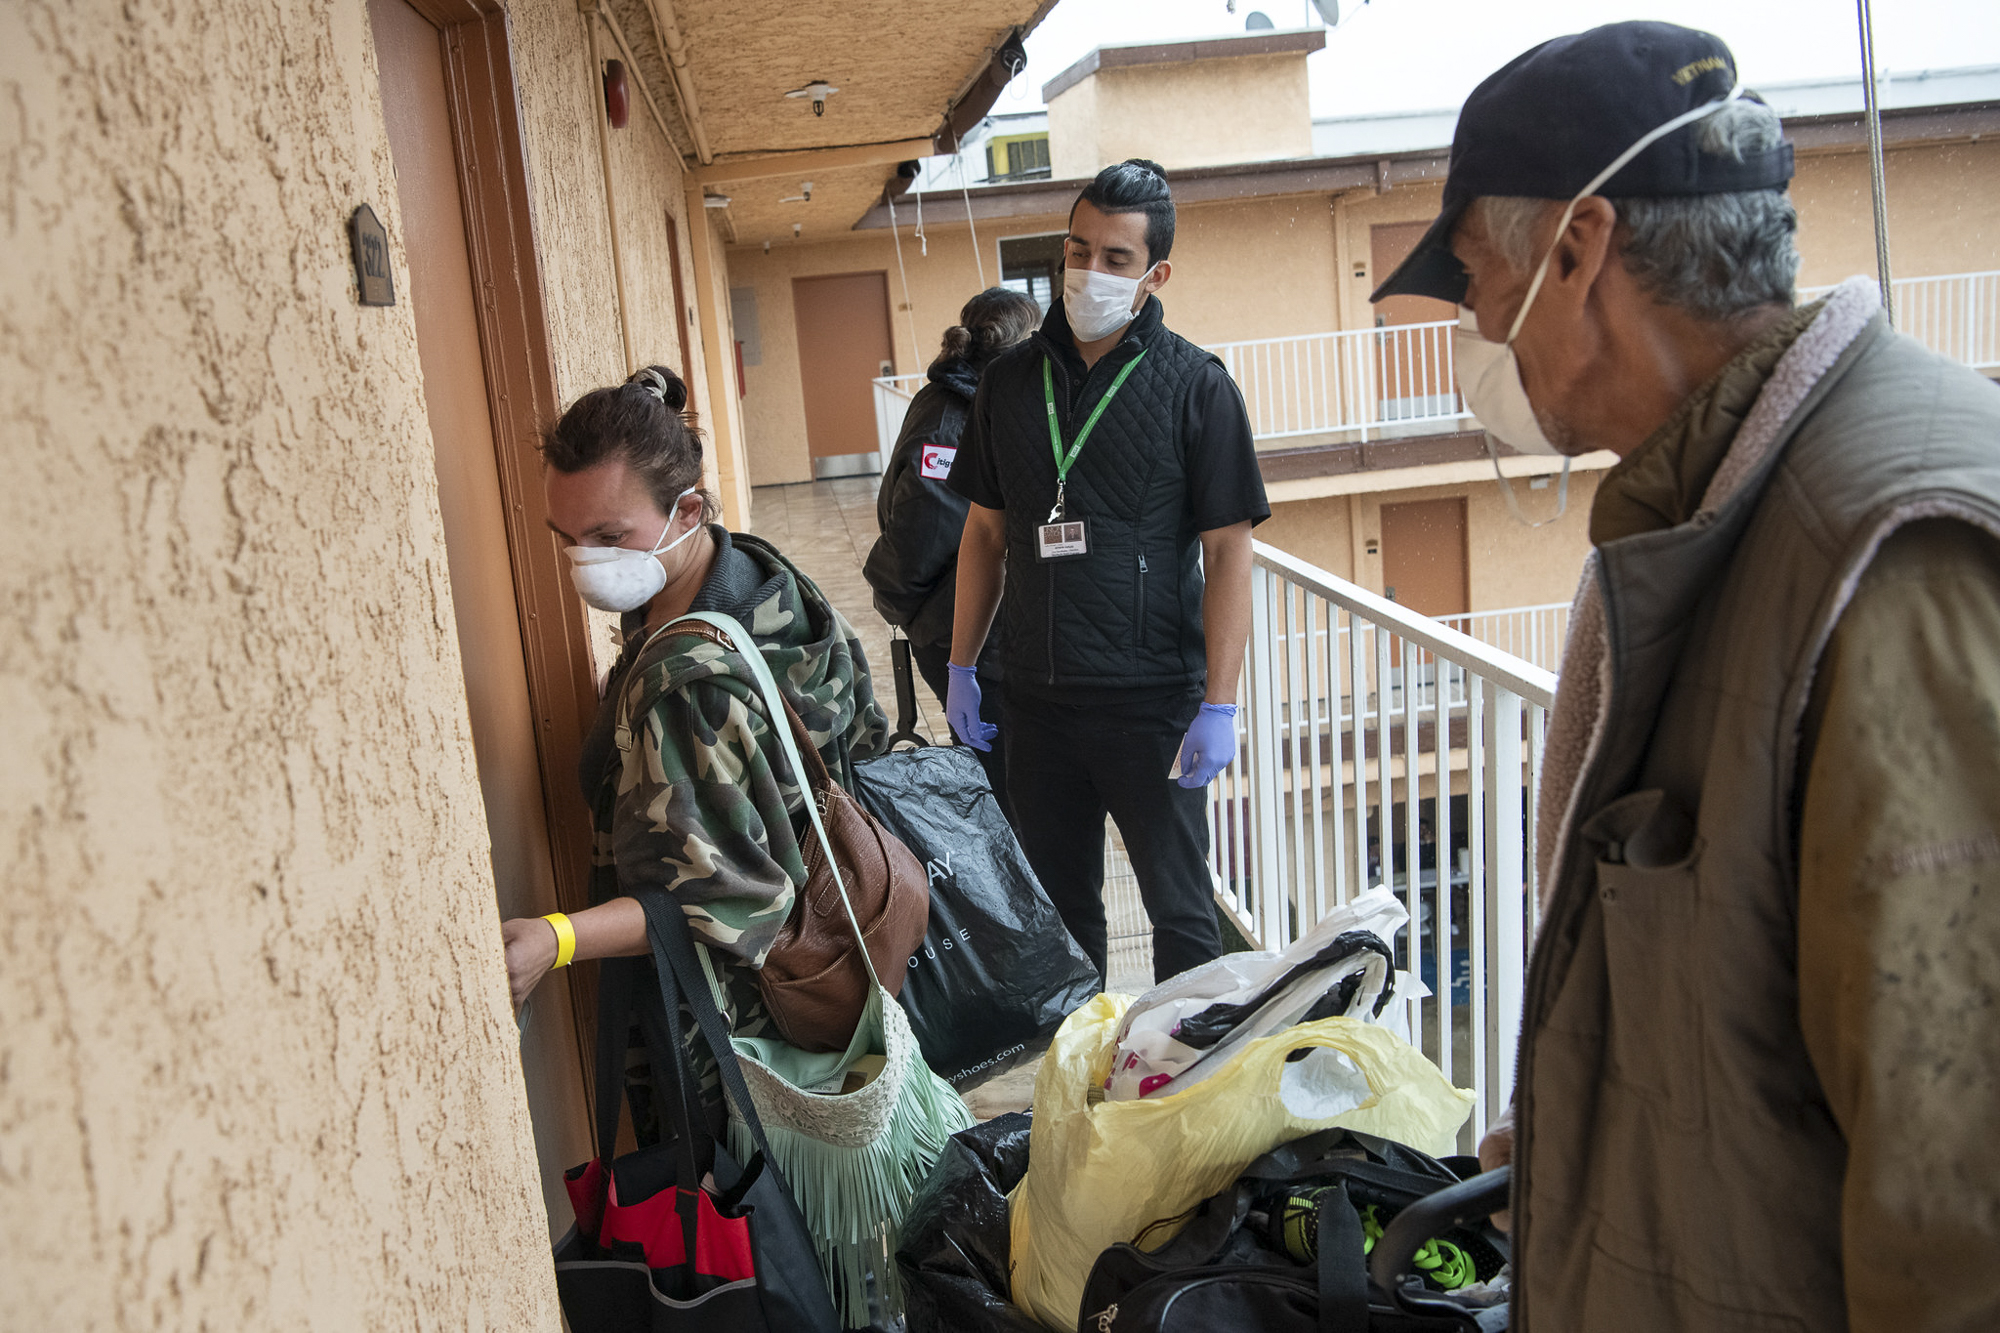 Cassie Gamboa, left, and Robert Romo, right, go into their new hotel room with Edwin Aviles, of Union Station Homeless Services on Tuesday, April 7, 2020. Photoby Michael Owen Baker courtesy of Los Angeles County